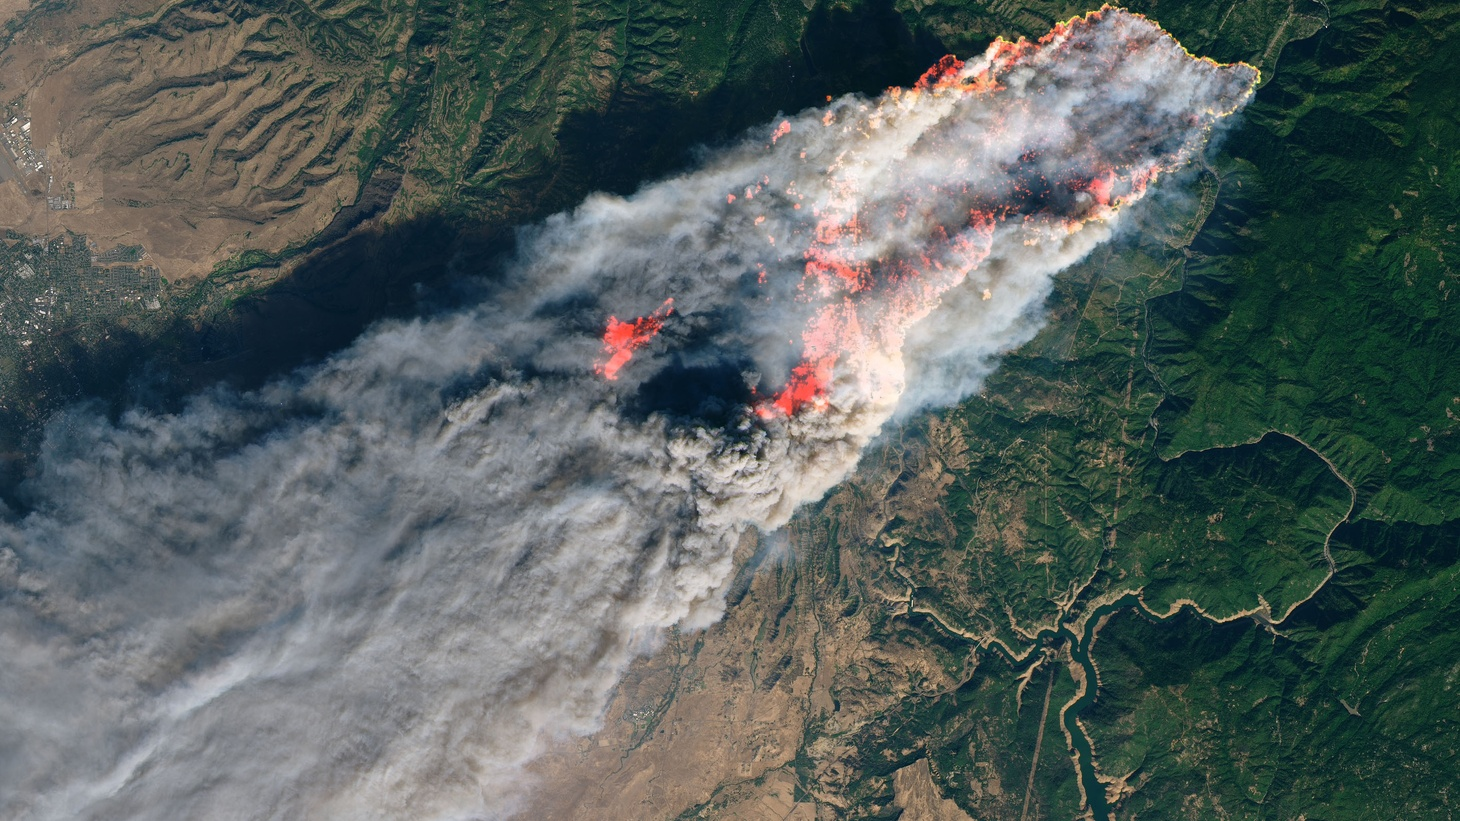 KCRW speaks with two residents of Paradise, Calif., where the Camp Fire destroyed thousands of homes and killed dozens of people. Susan Fort's home still stands. Natalie Carmichael was able to escape with her dogs but lost everything else.